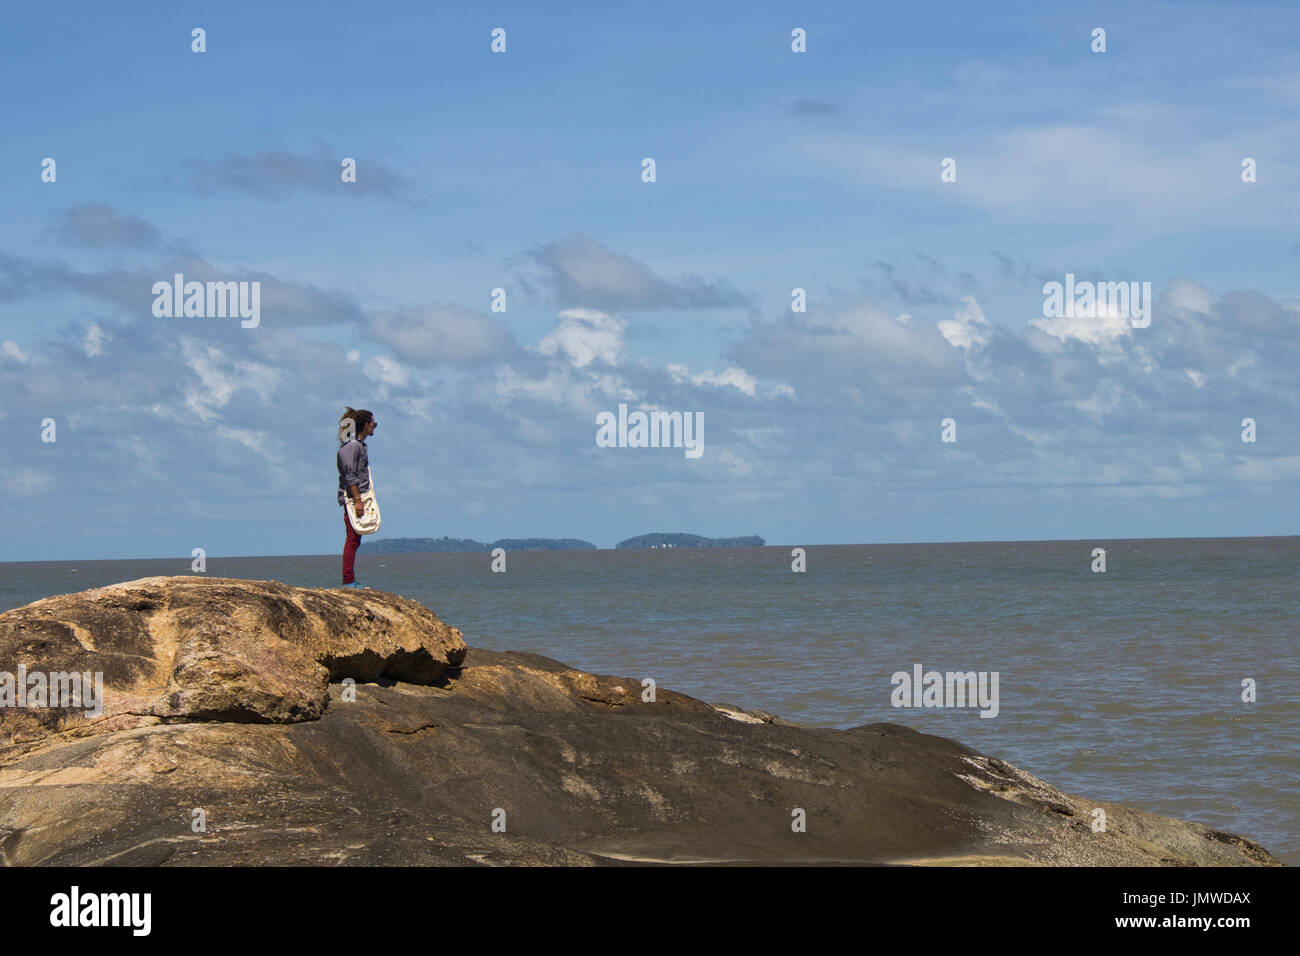 A man standing on a rock  on the background of Salvation's islands in Kourou, French Guiana - Stock Image